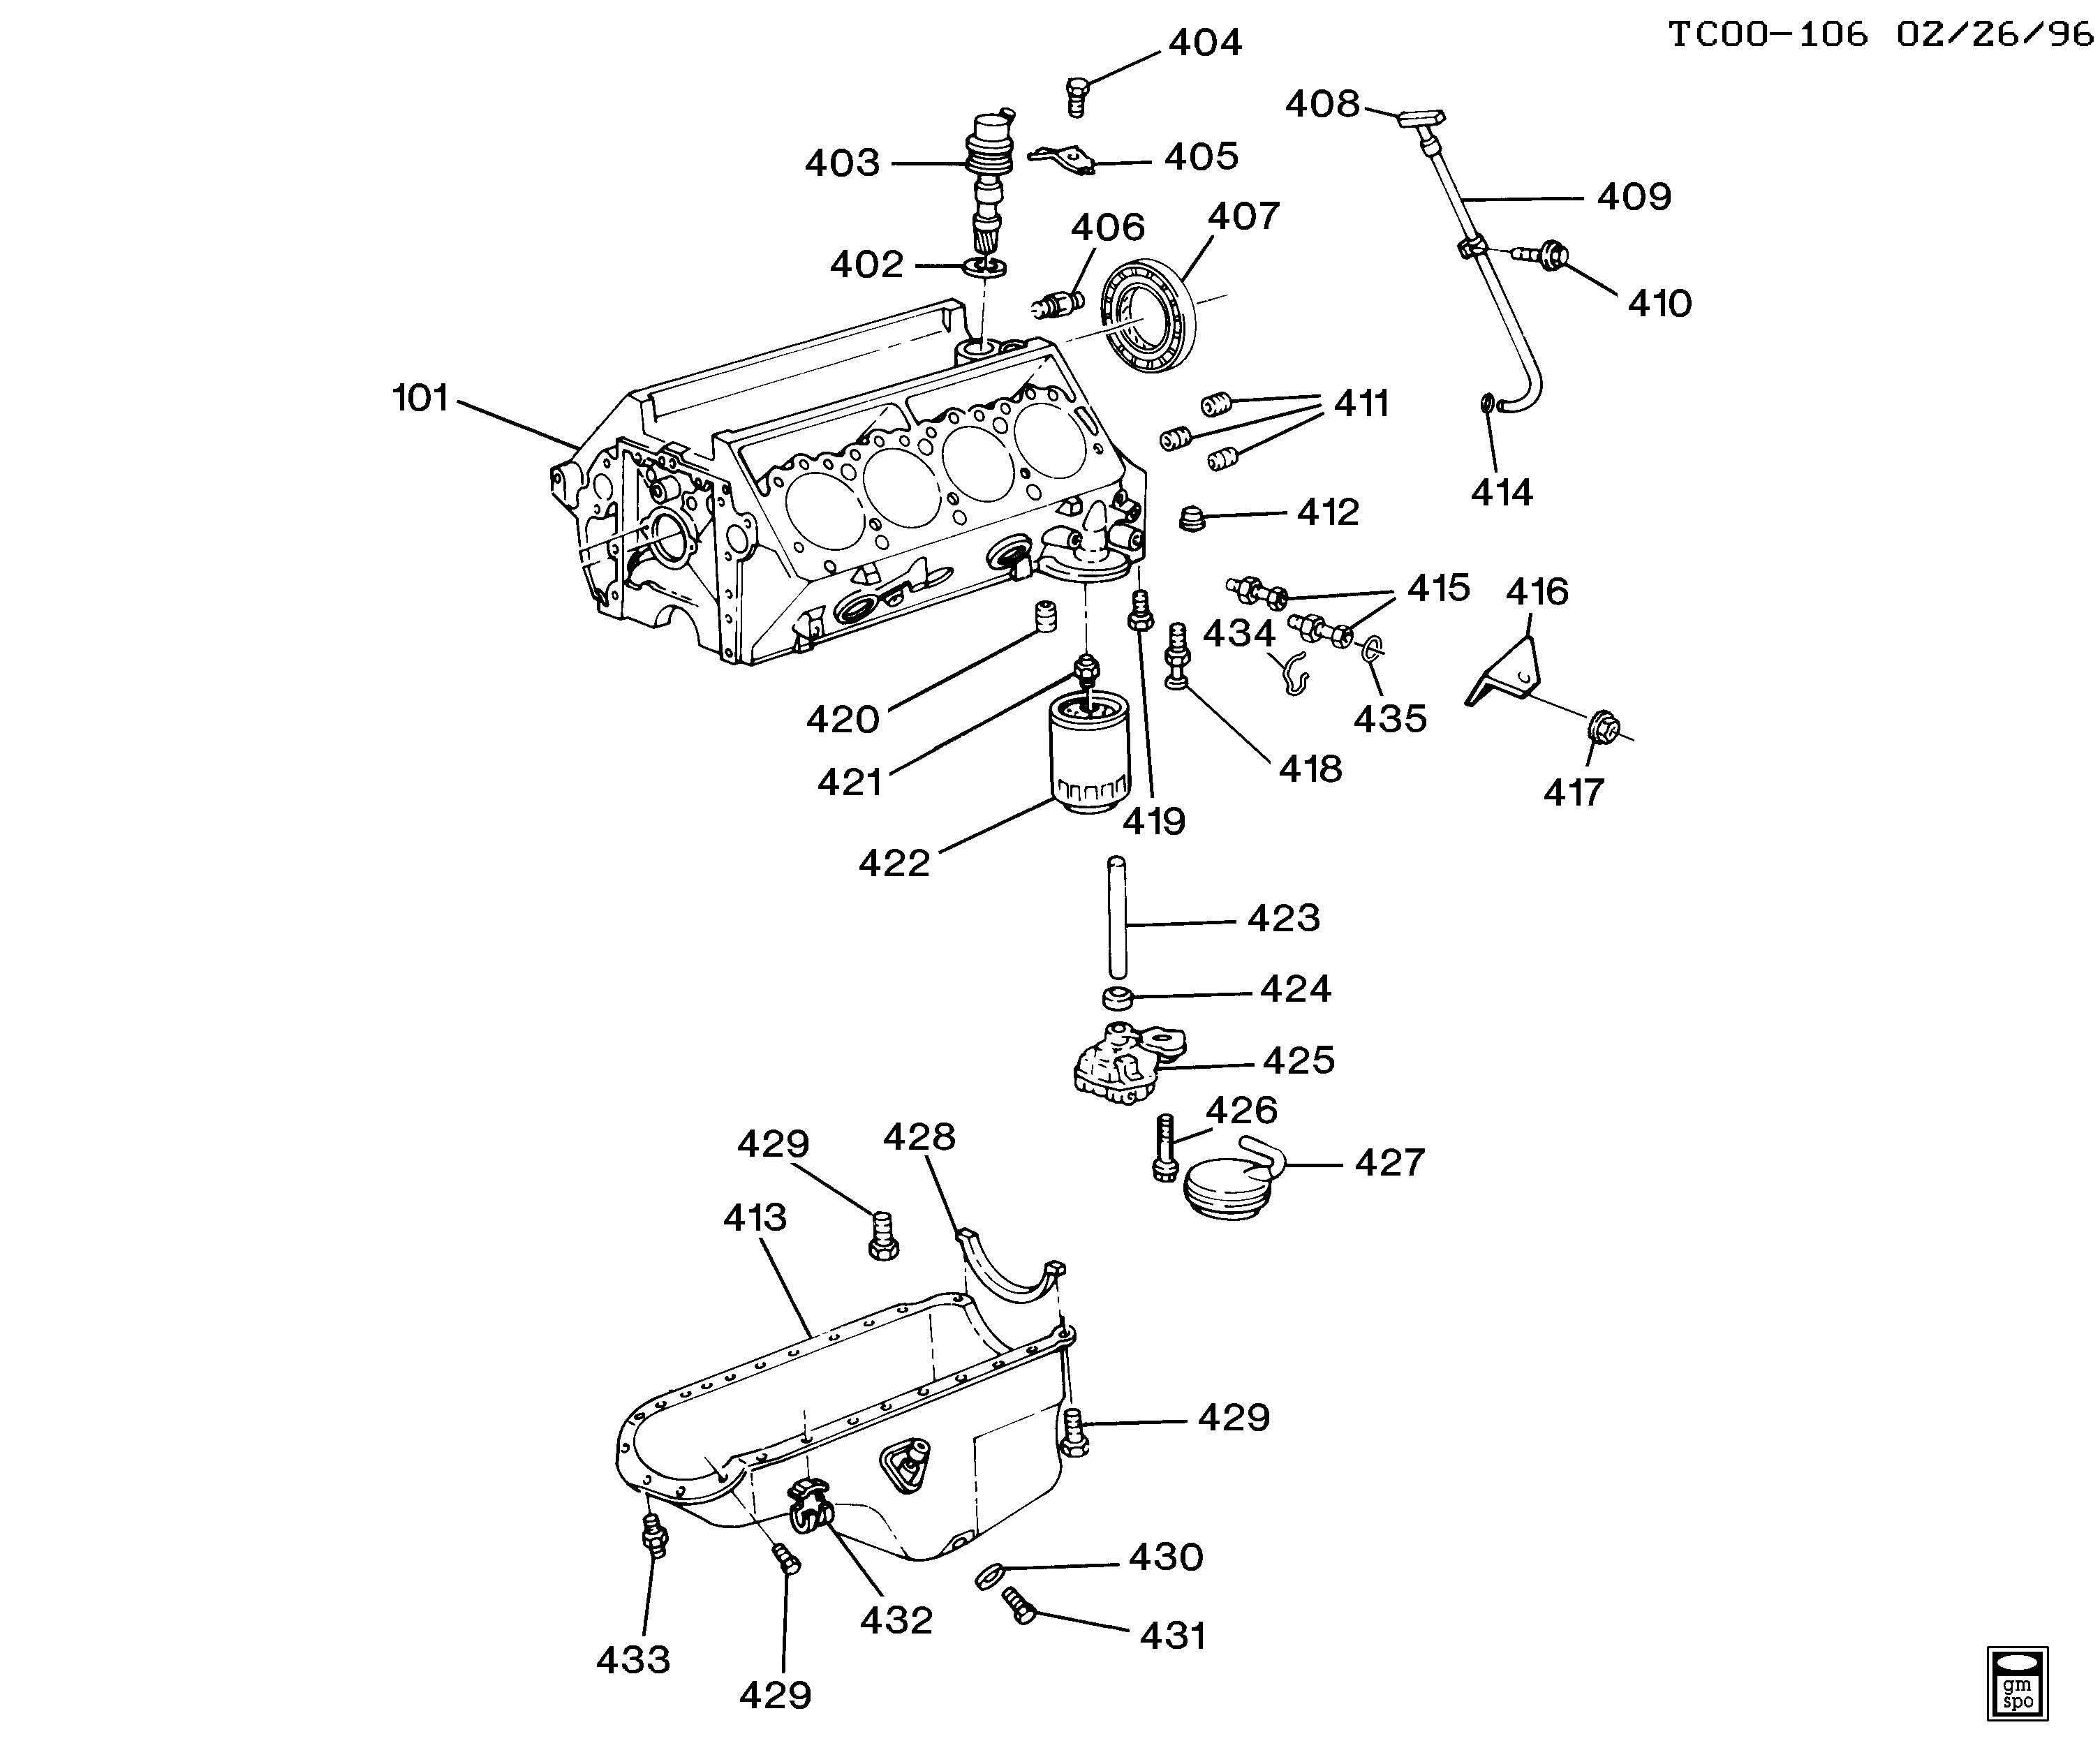 Diesel Engine Parts Diagram Gmc C1500 Pickup Sierra 2wd Ck